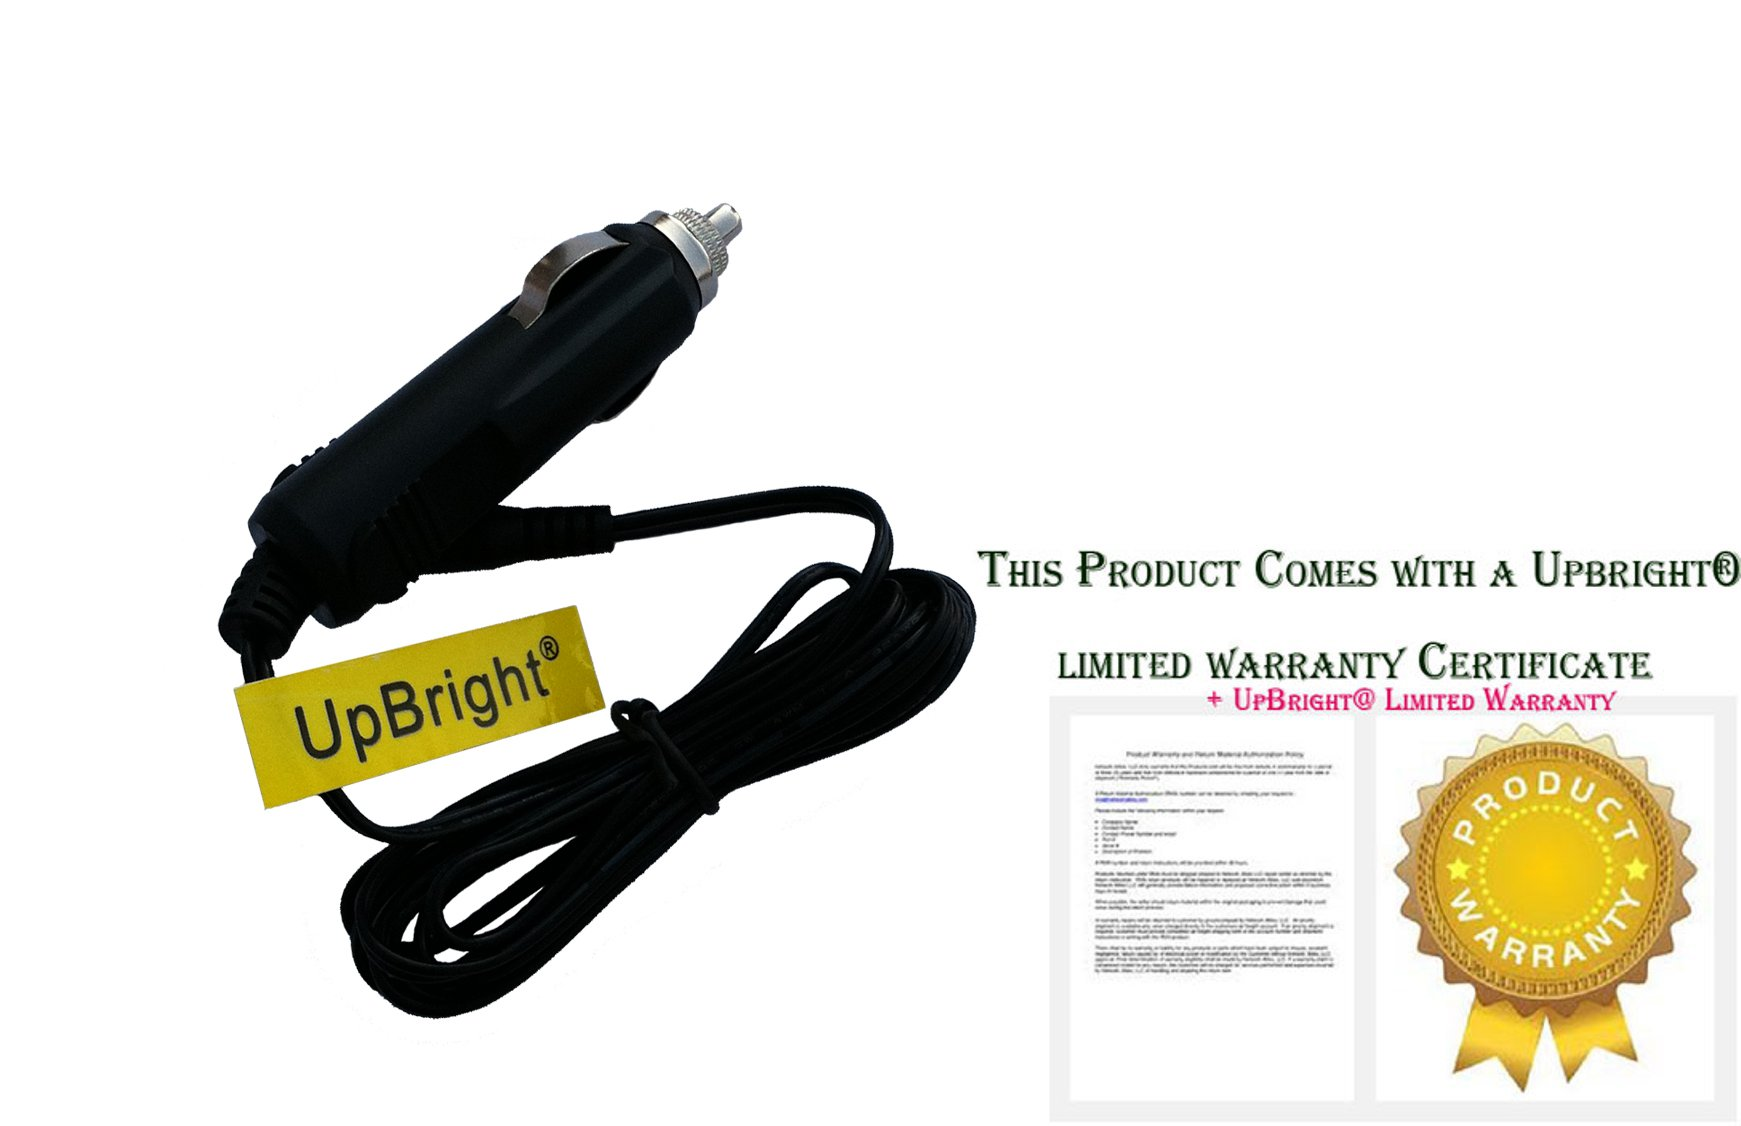 UpBright NEW Car DC Adapter For Onn ONA16AV008 7'', ONA17AV042 10'' Swivel Portable DVD Player Auto Vehicle Boat RV Camper Cigarette Lighter Plug Power Supply Cord Cable PS Battery Charger Mains PSU by UPBRIGHT (Image #1)